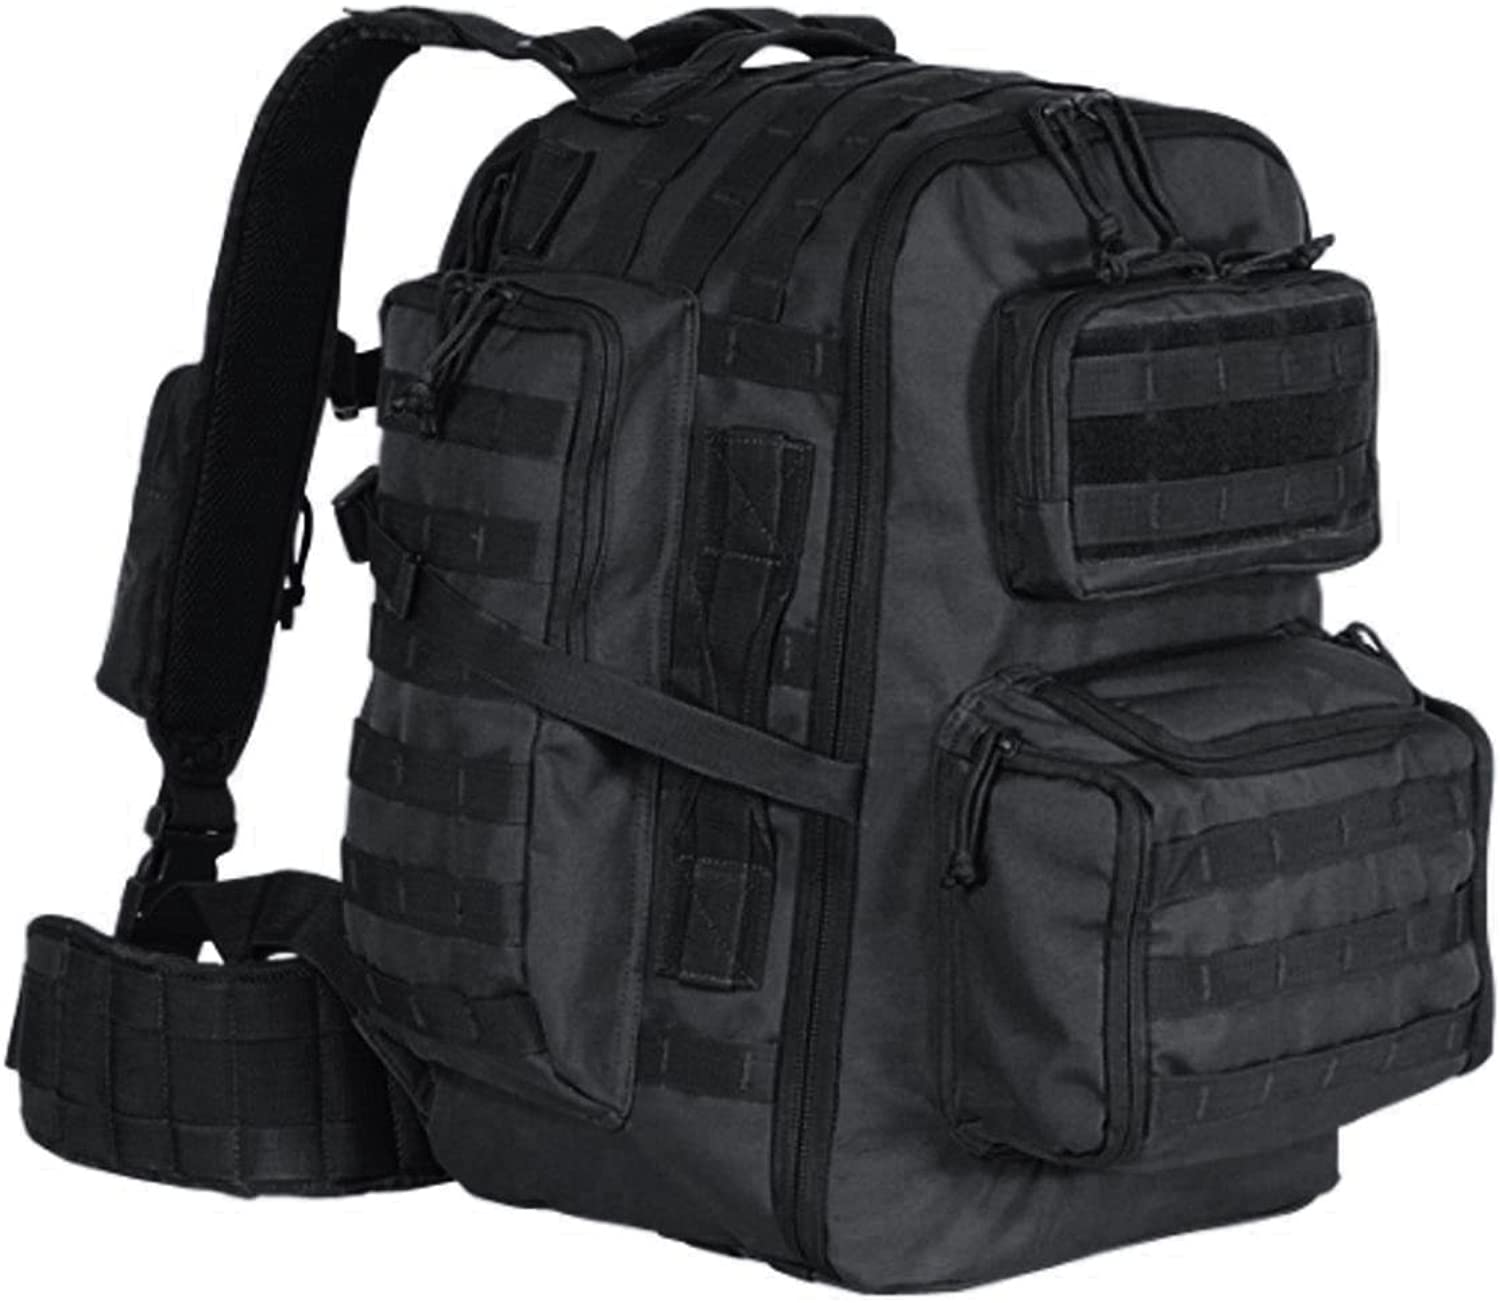 VooDoo Tactical 15-0040001000 T.H.O.R. Pack, Black